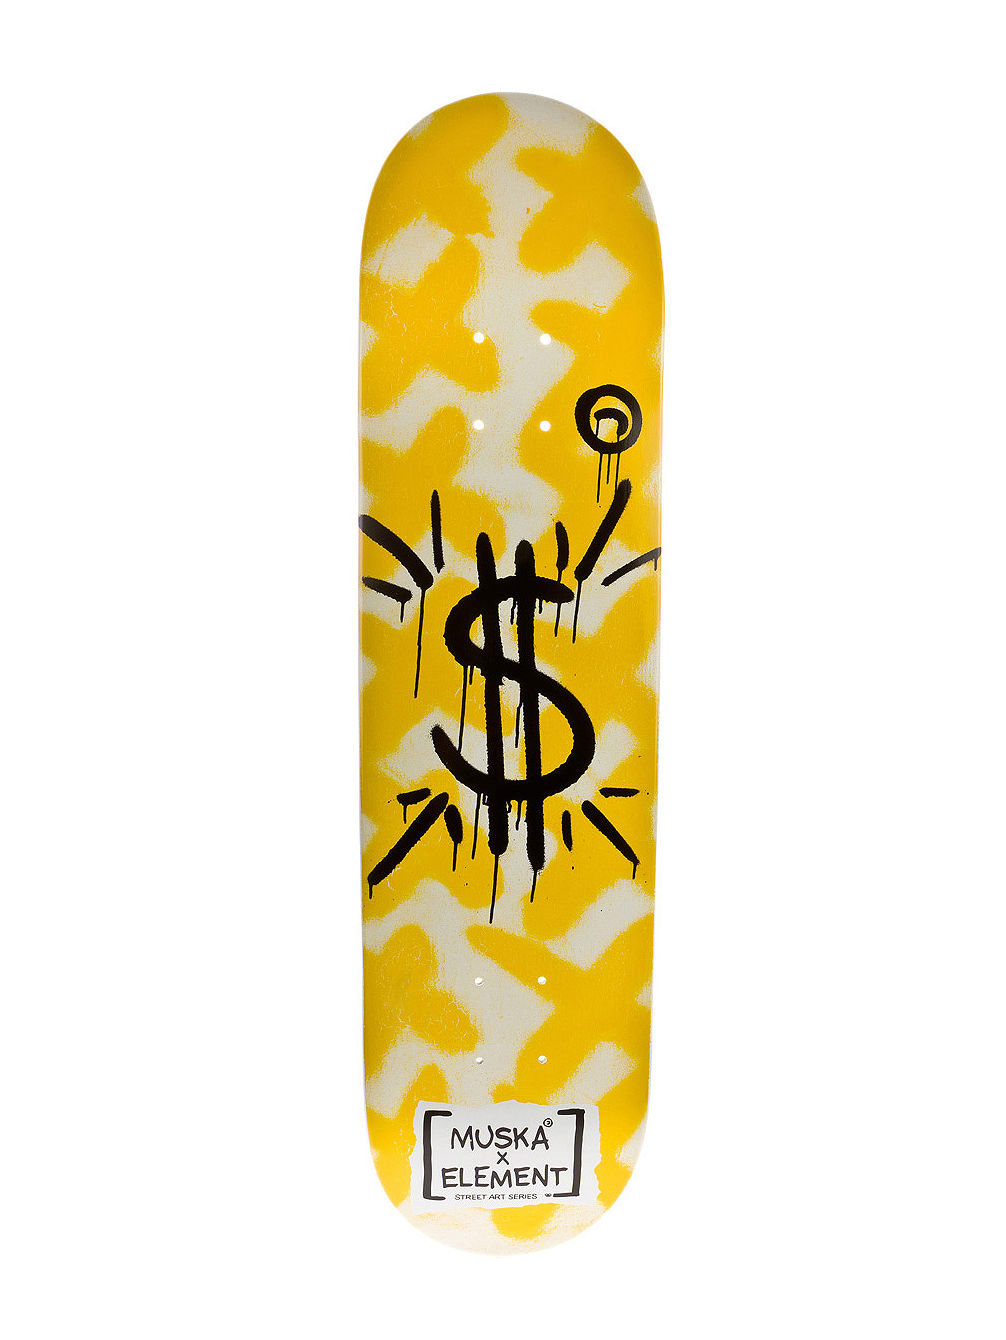 Muska Money Shape 9 7.75